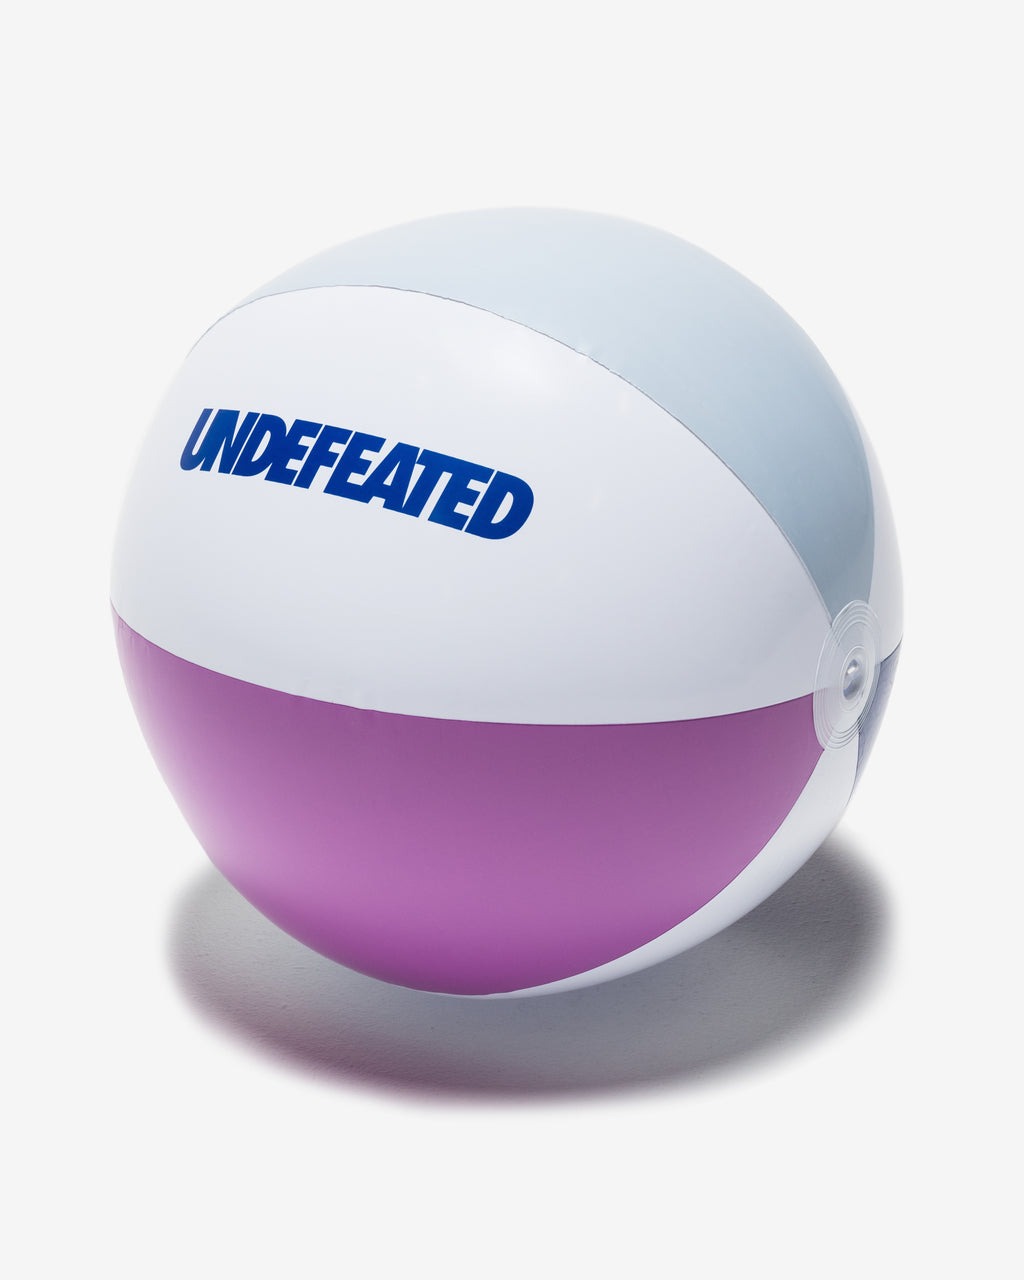 UNDEFEATED BEACH BALL - BLUE MULTI